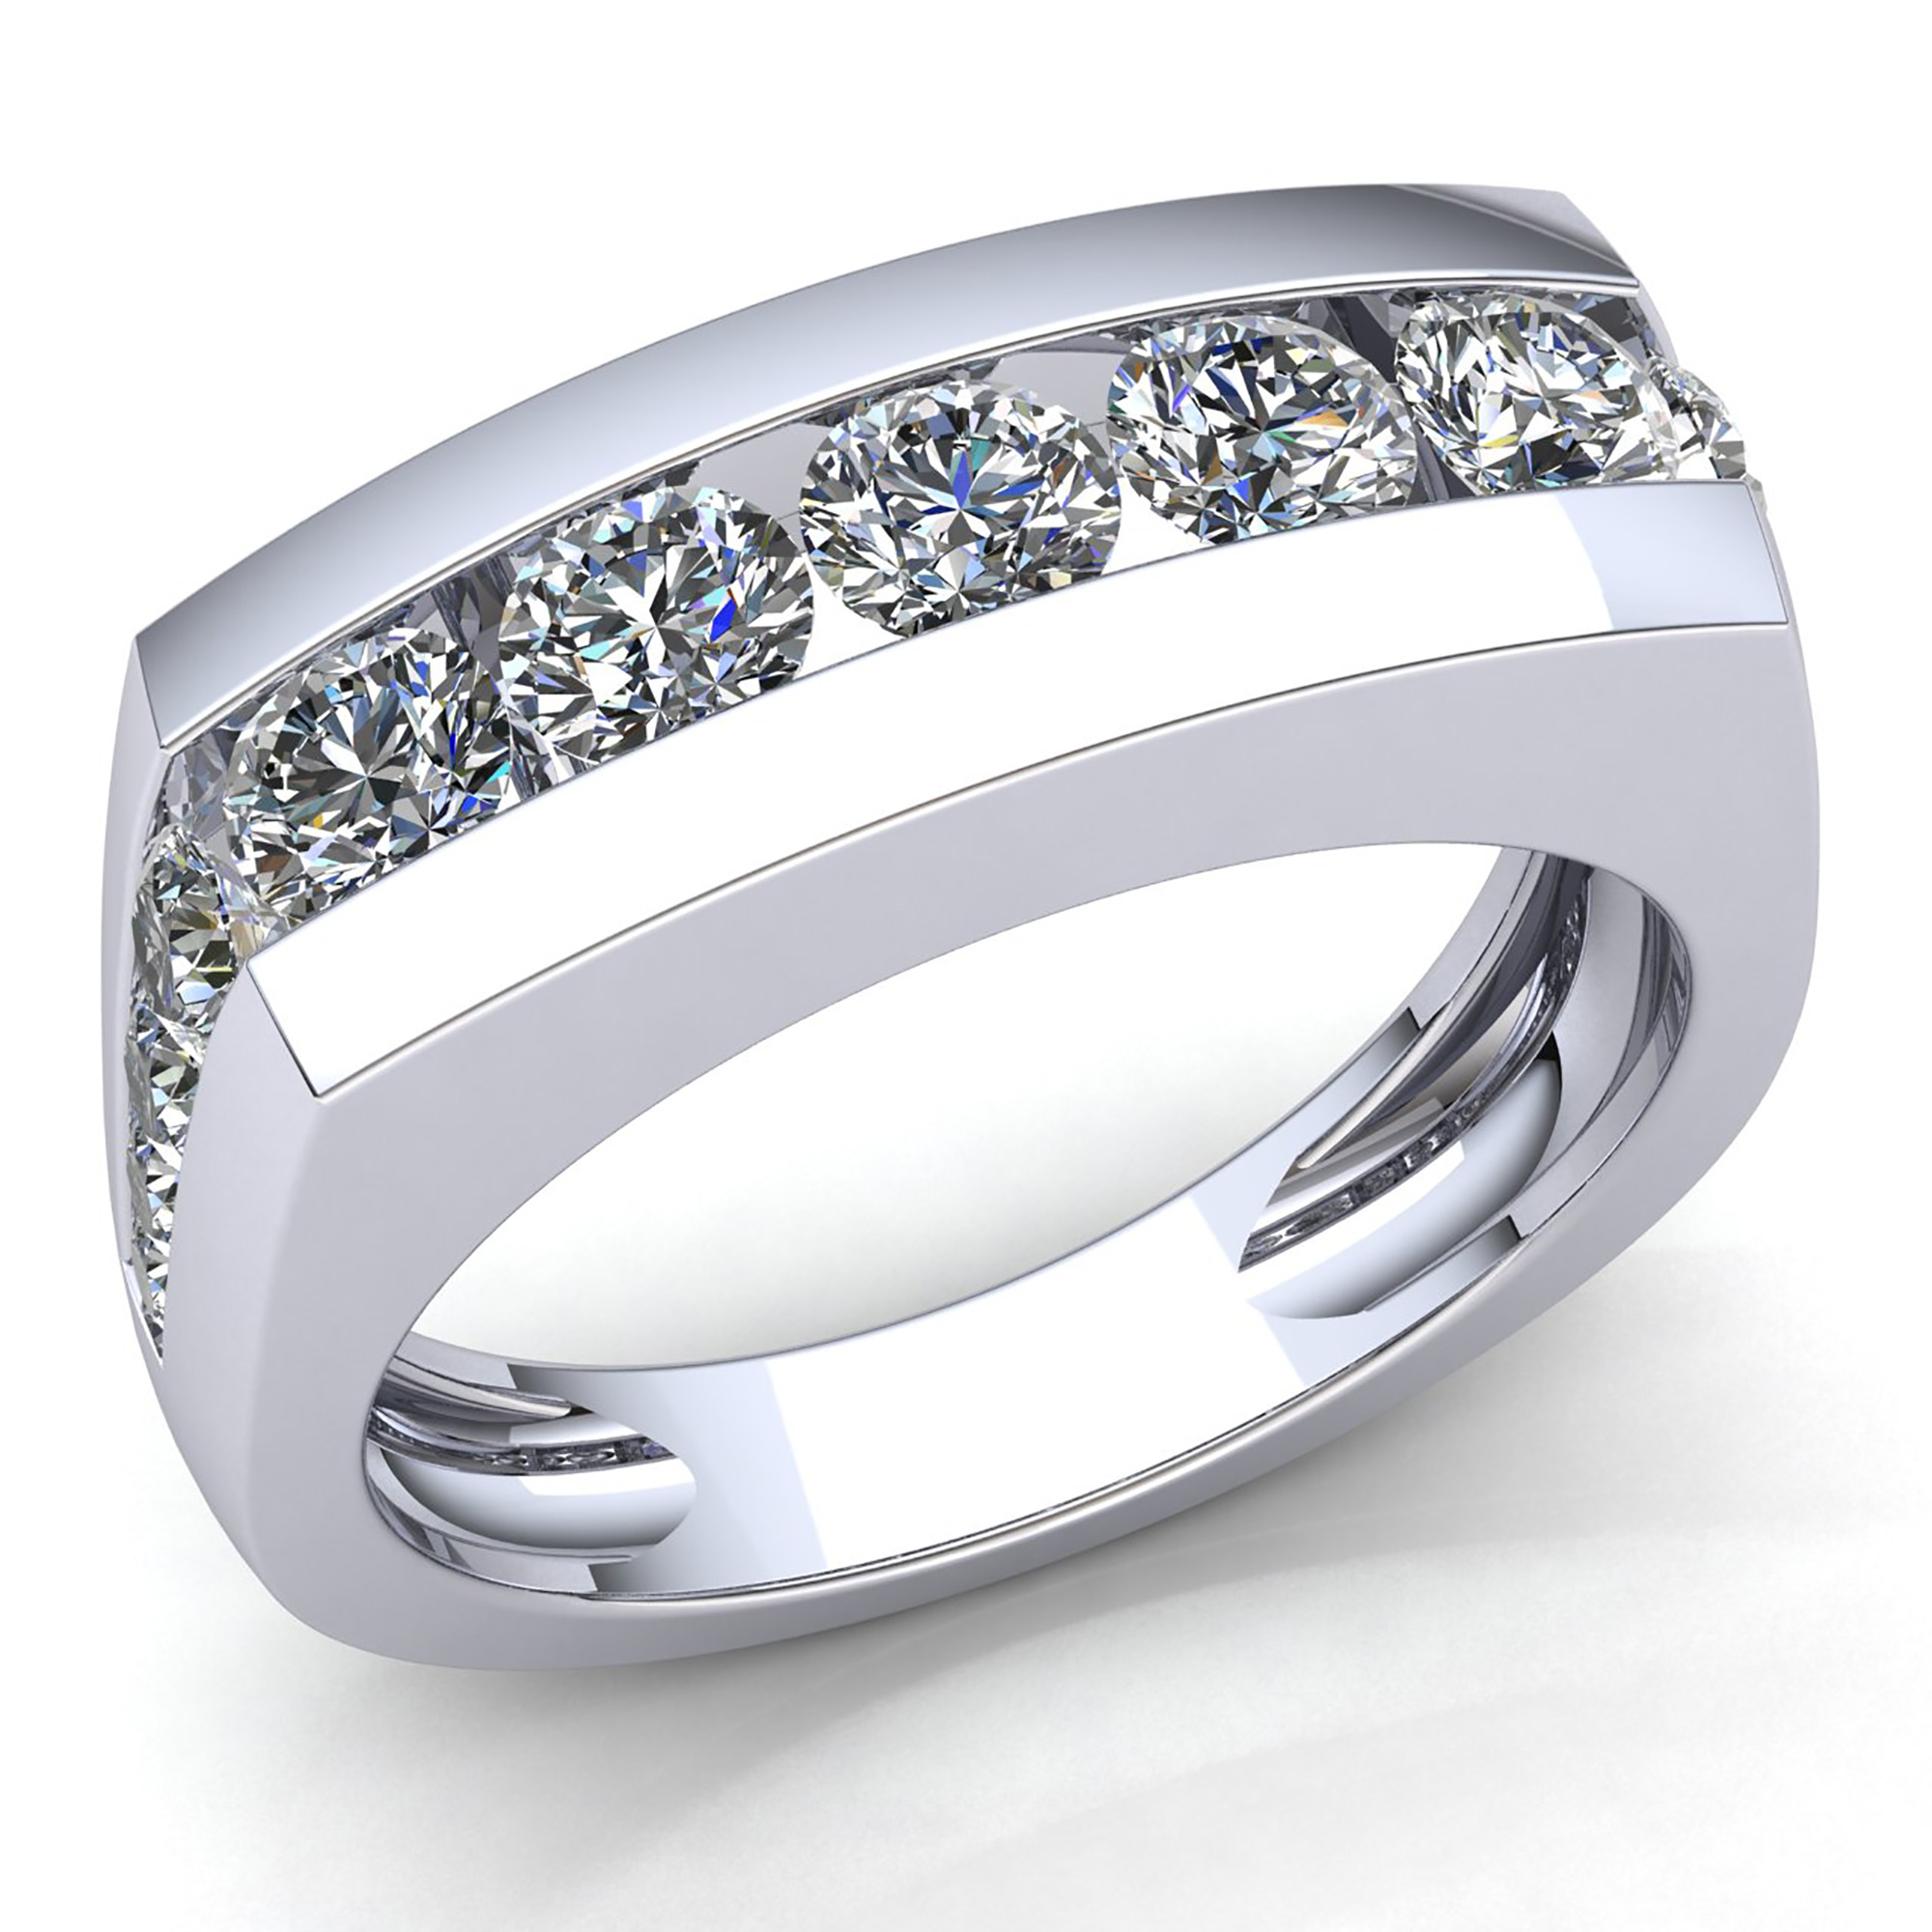 ring set product anniversary davies round bands gold white edwards band channel diamond baguette and